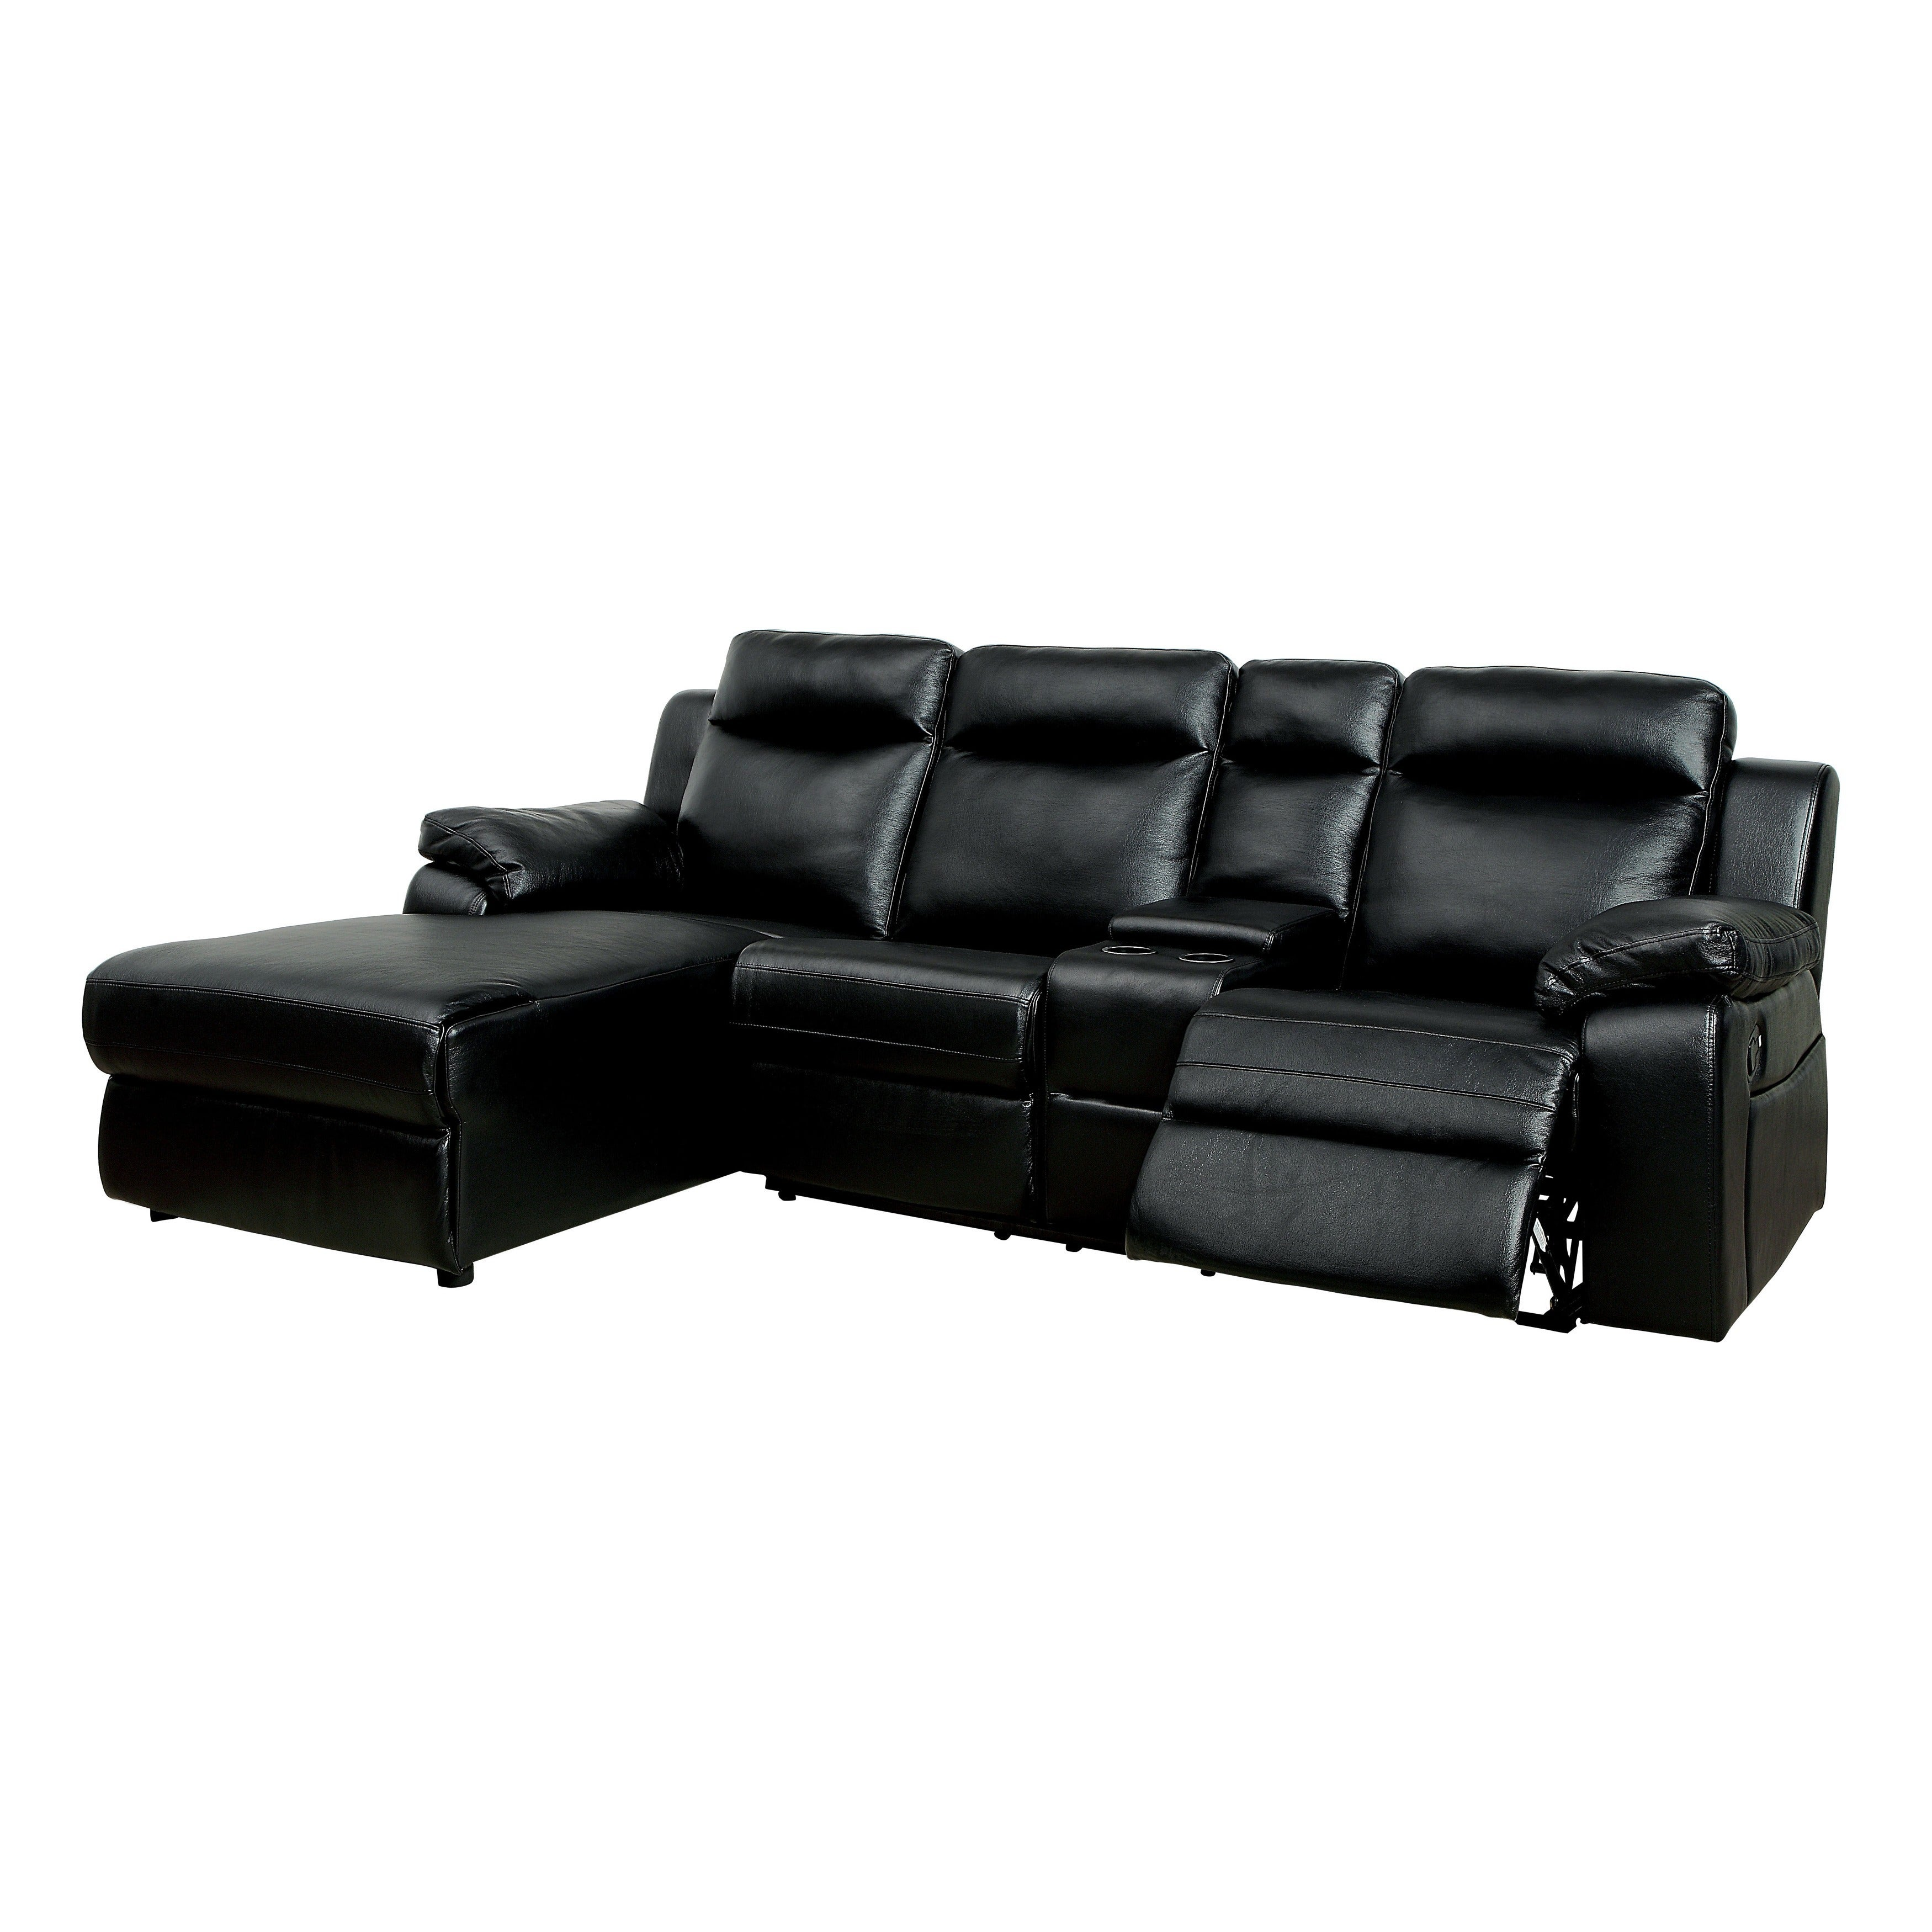 Shop Furniture Of America Tristen Reclining L Shaped Leatherette Sectional    Free Shipping Today   Overstock.com   12509889